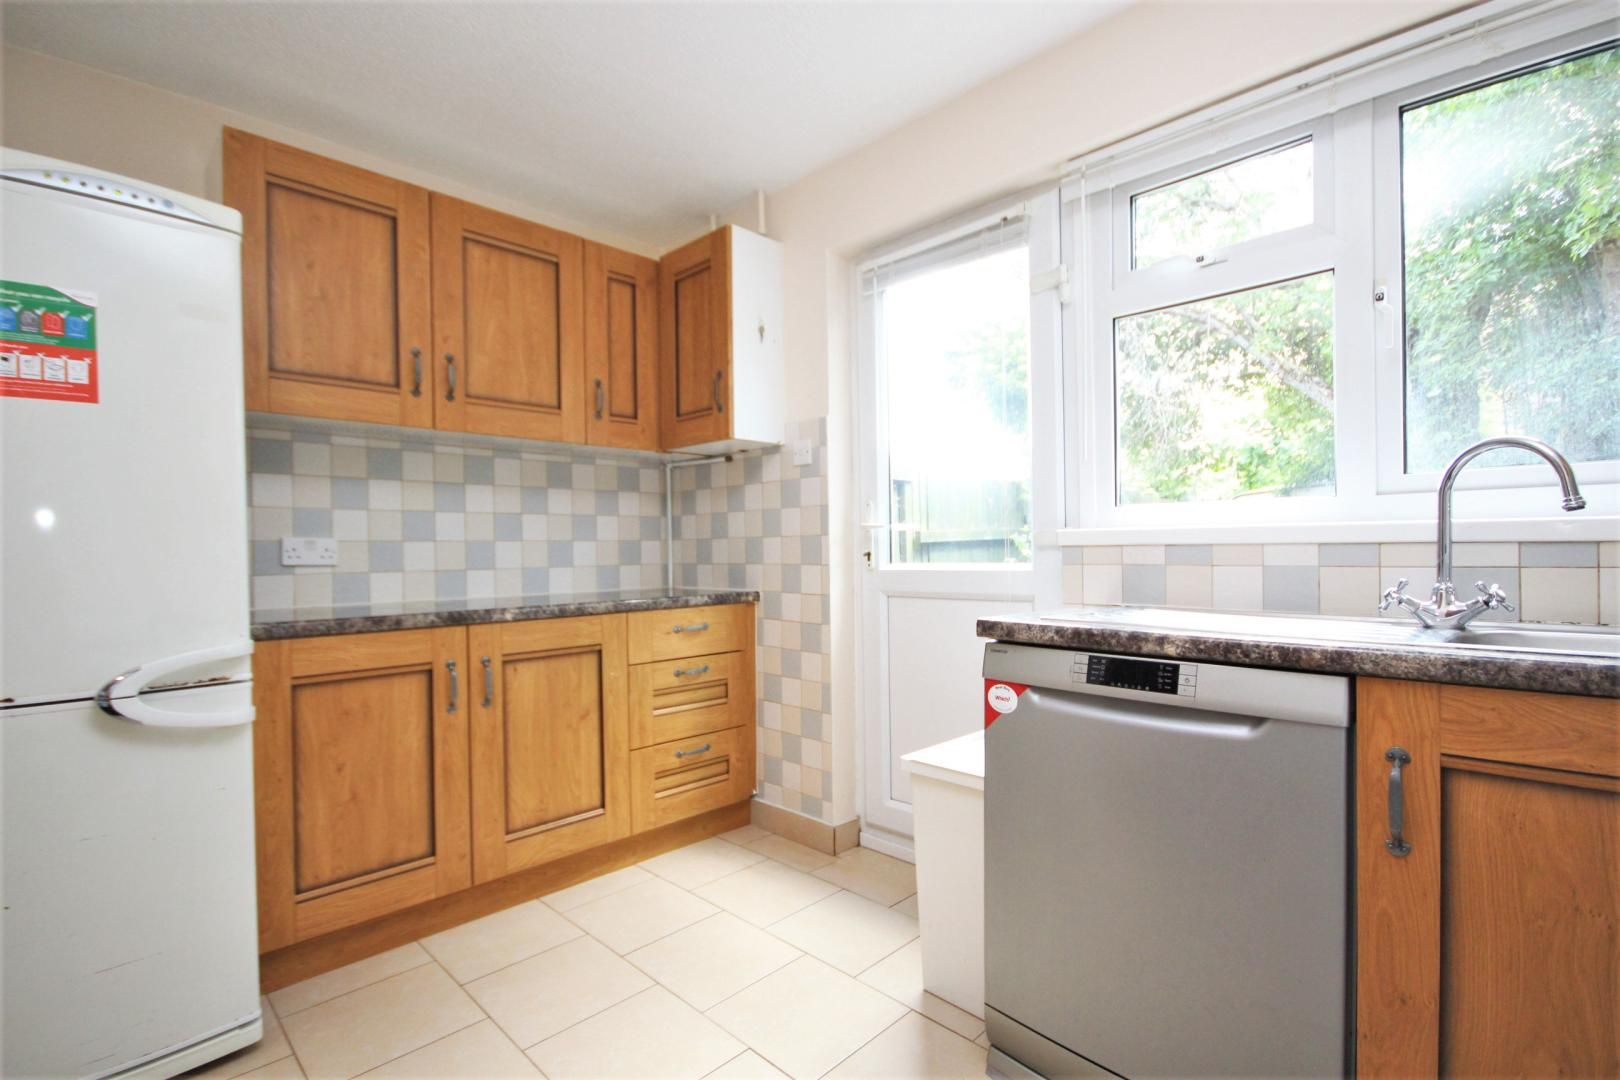 2 bed house to rent in York Close, E6